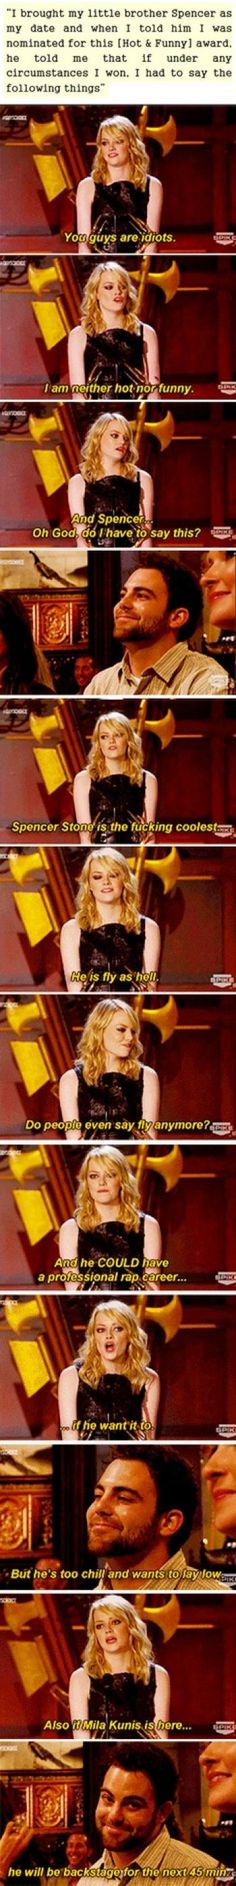 Emma Stone is the best sister ever!